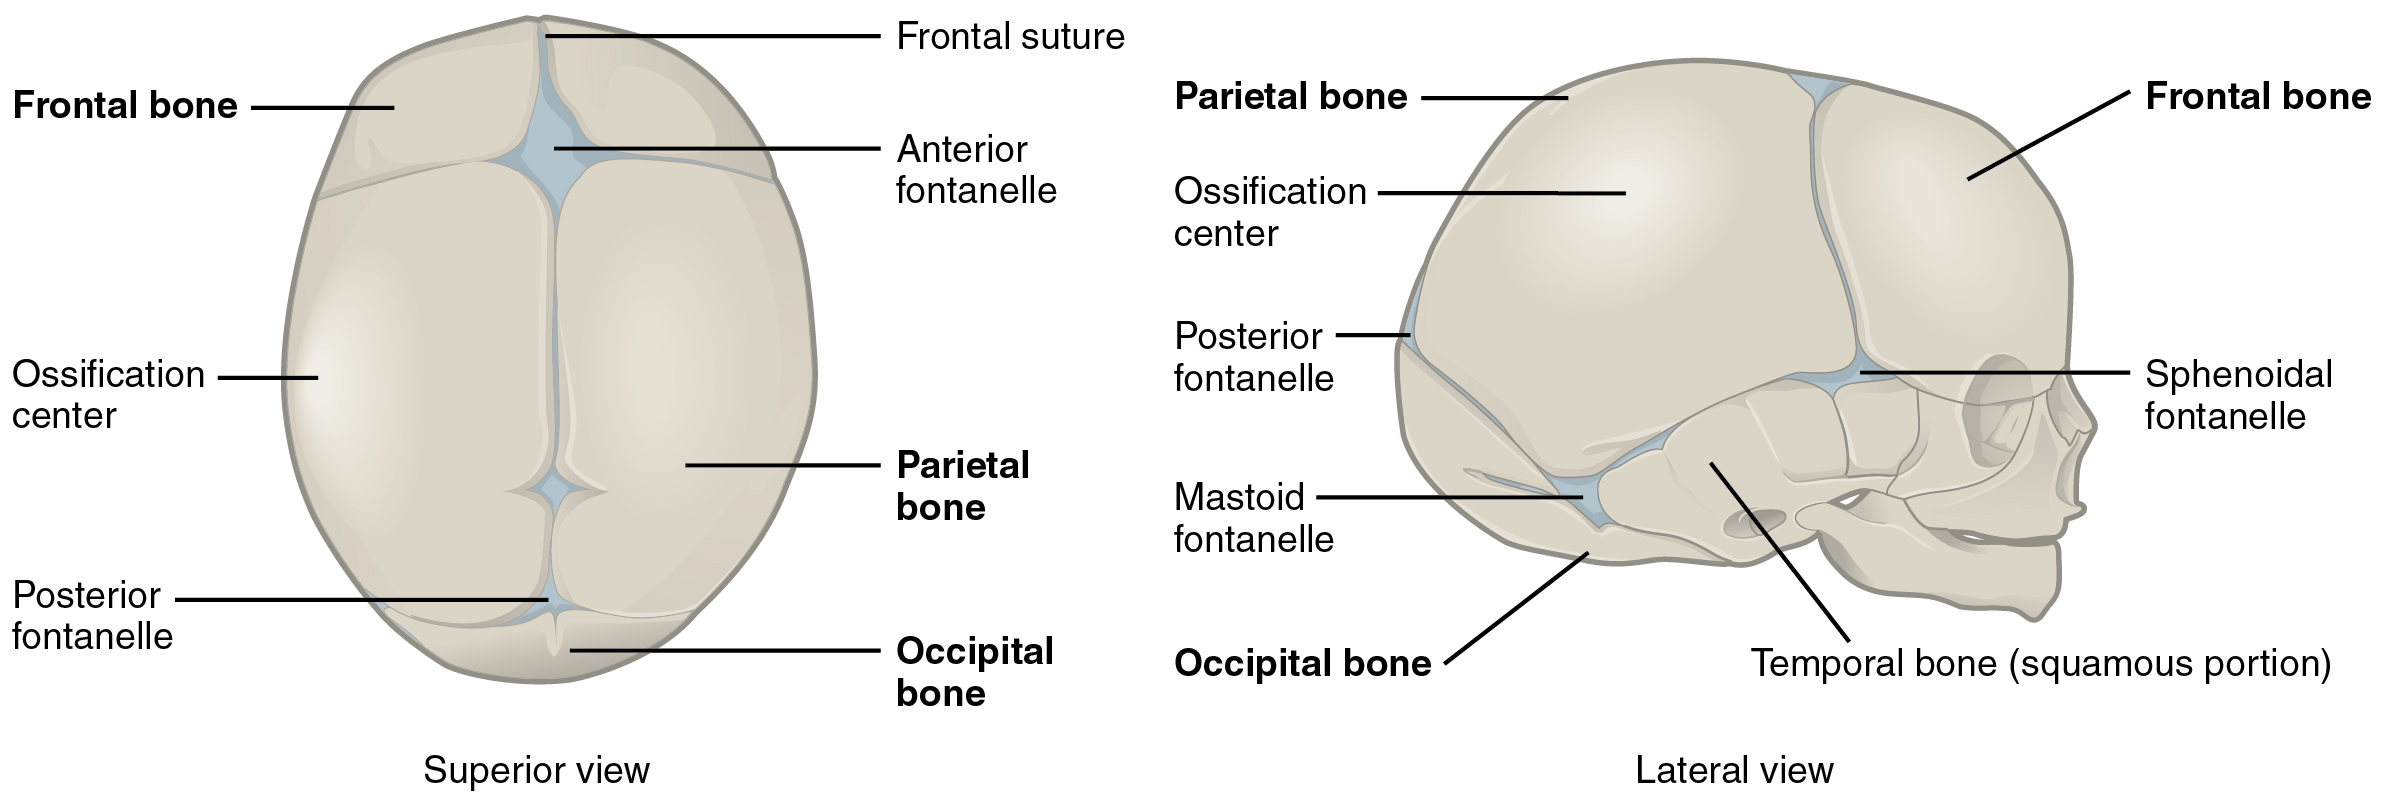 Development Of The Vertebral Column And Thoracic Cage By Openstax